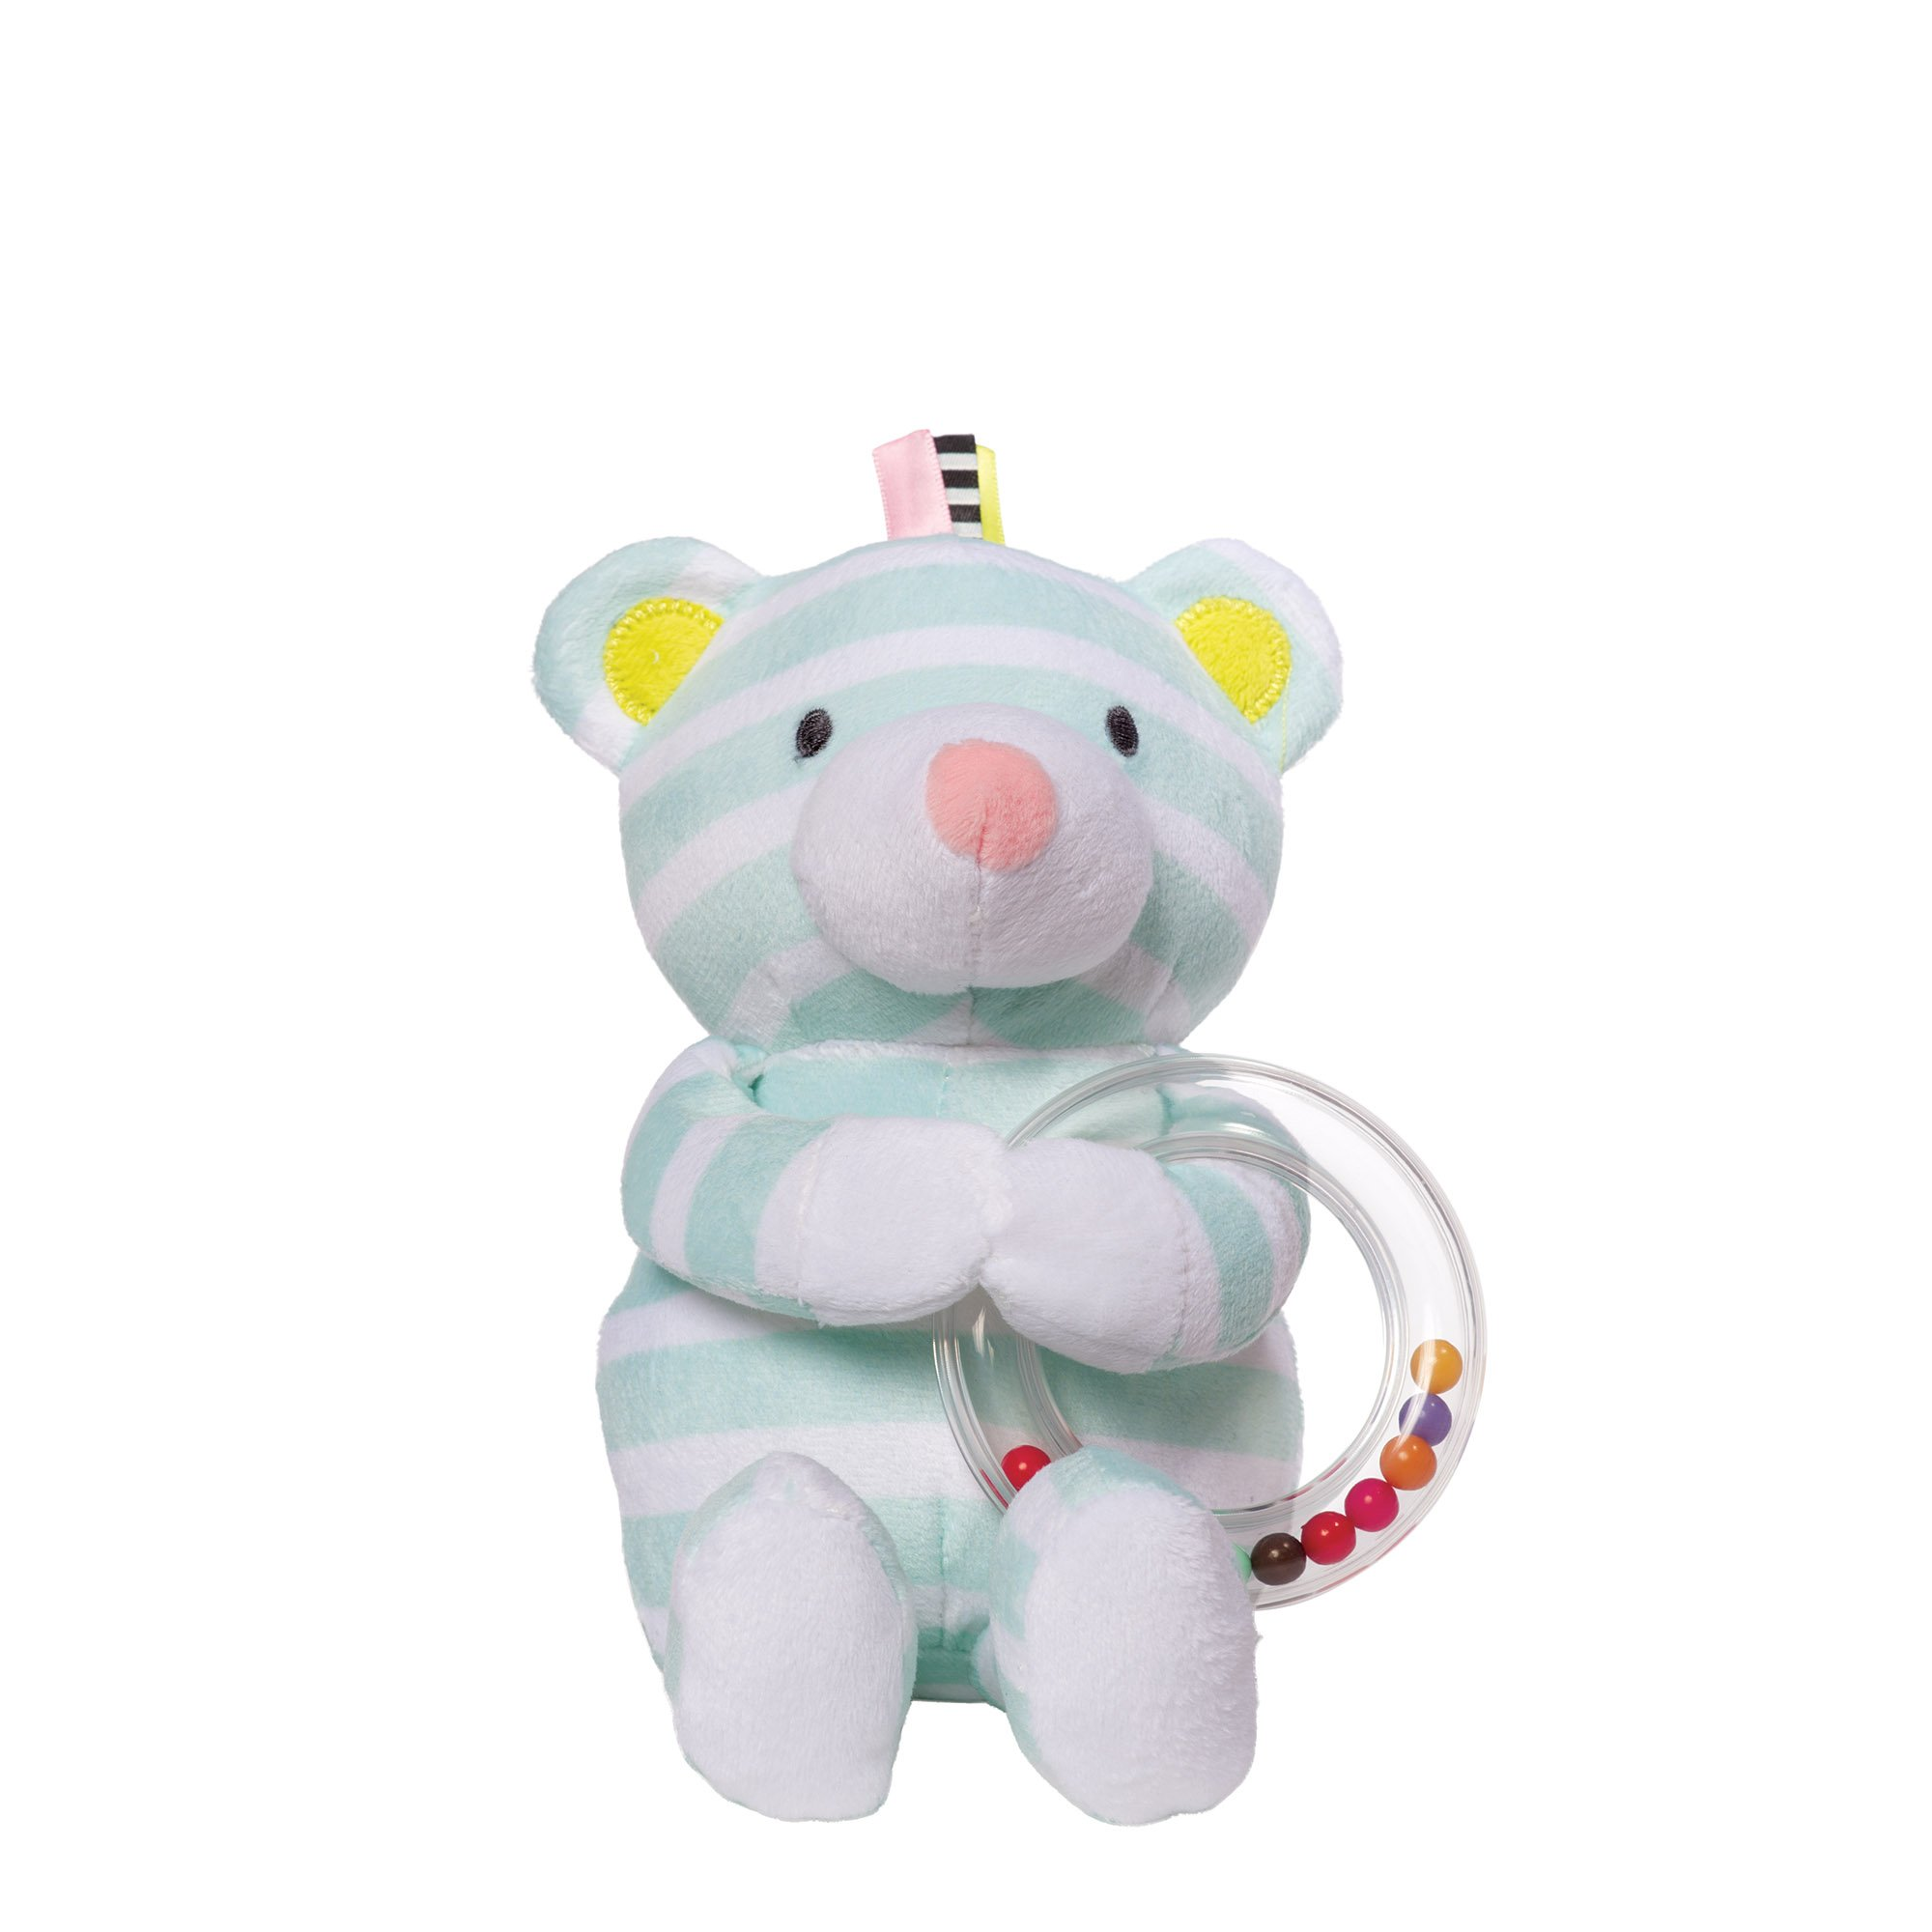 Manhattan Toy Playtime Plush Toy, Bear with Ring Rattle